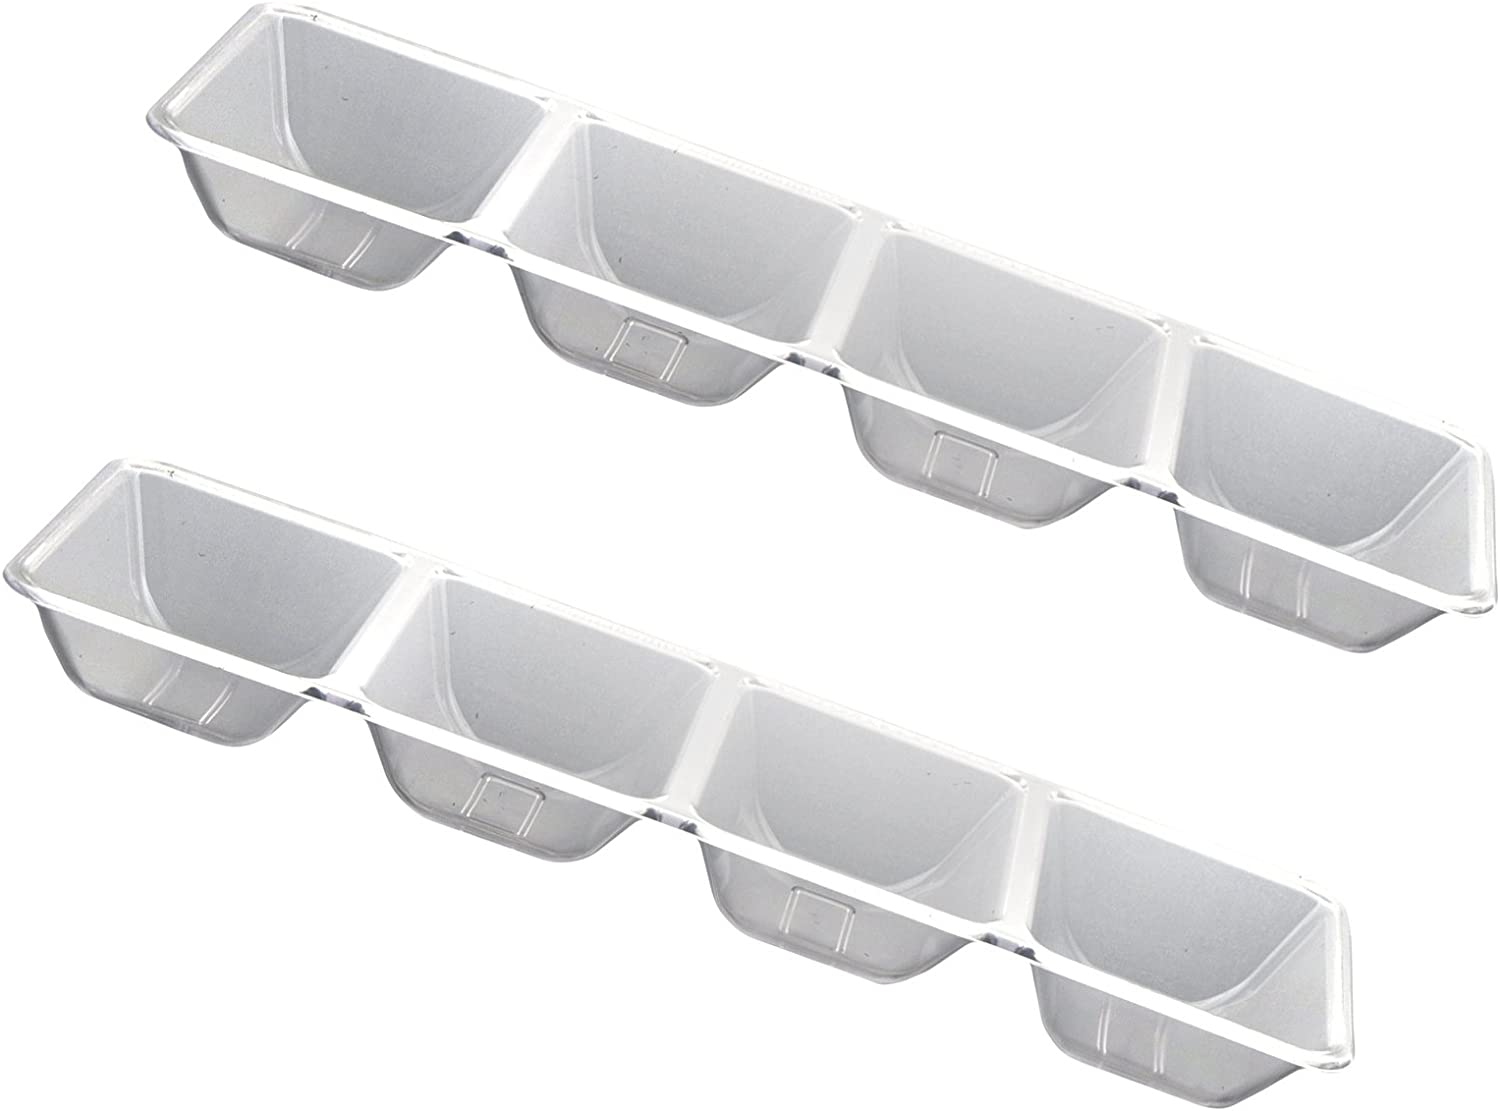 Party Essentials Hard Plastic 4-Compartment Rectangular Serving Trays, 5 x 16 Inches, Crystal Clear, 2-Pack